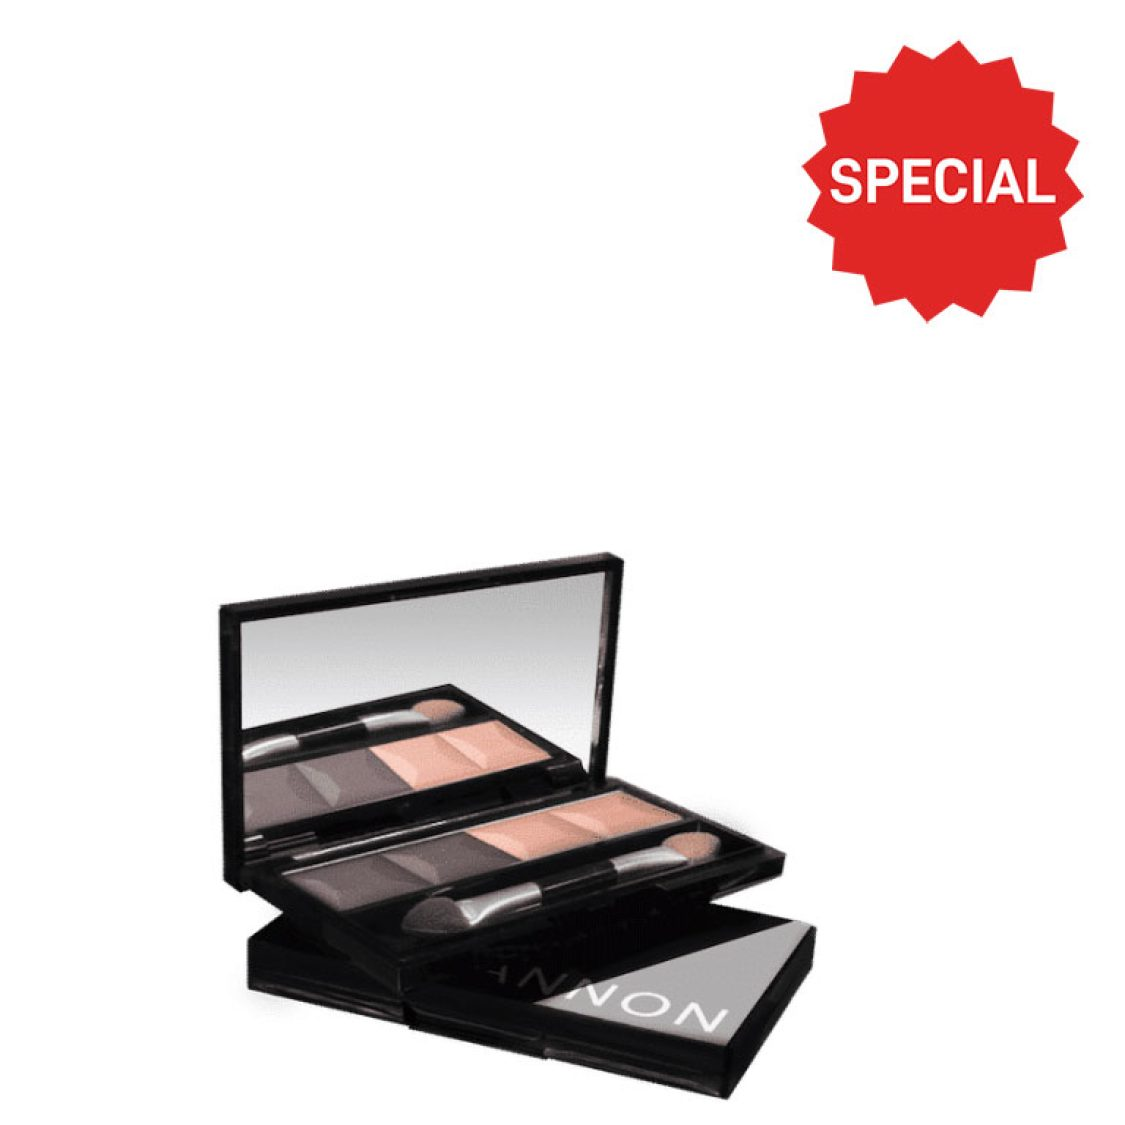 Hannon - Duo Eyeshadow for Brown Eyes (2 Shades)